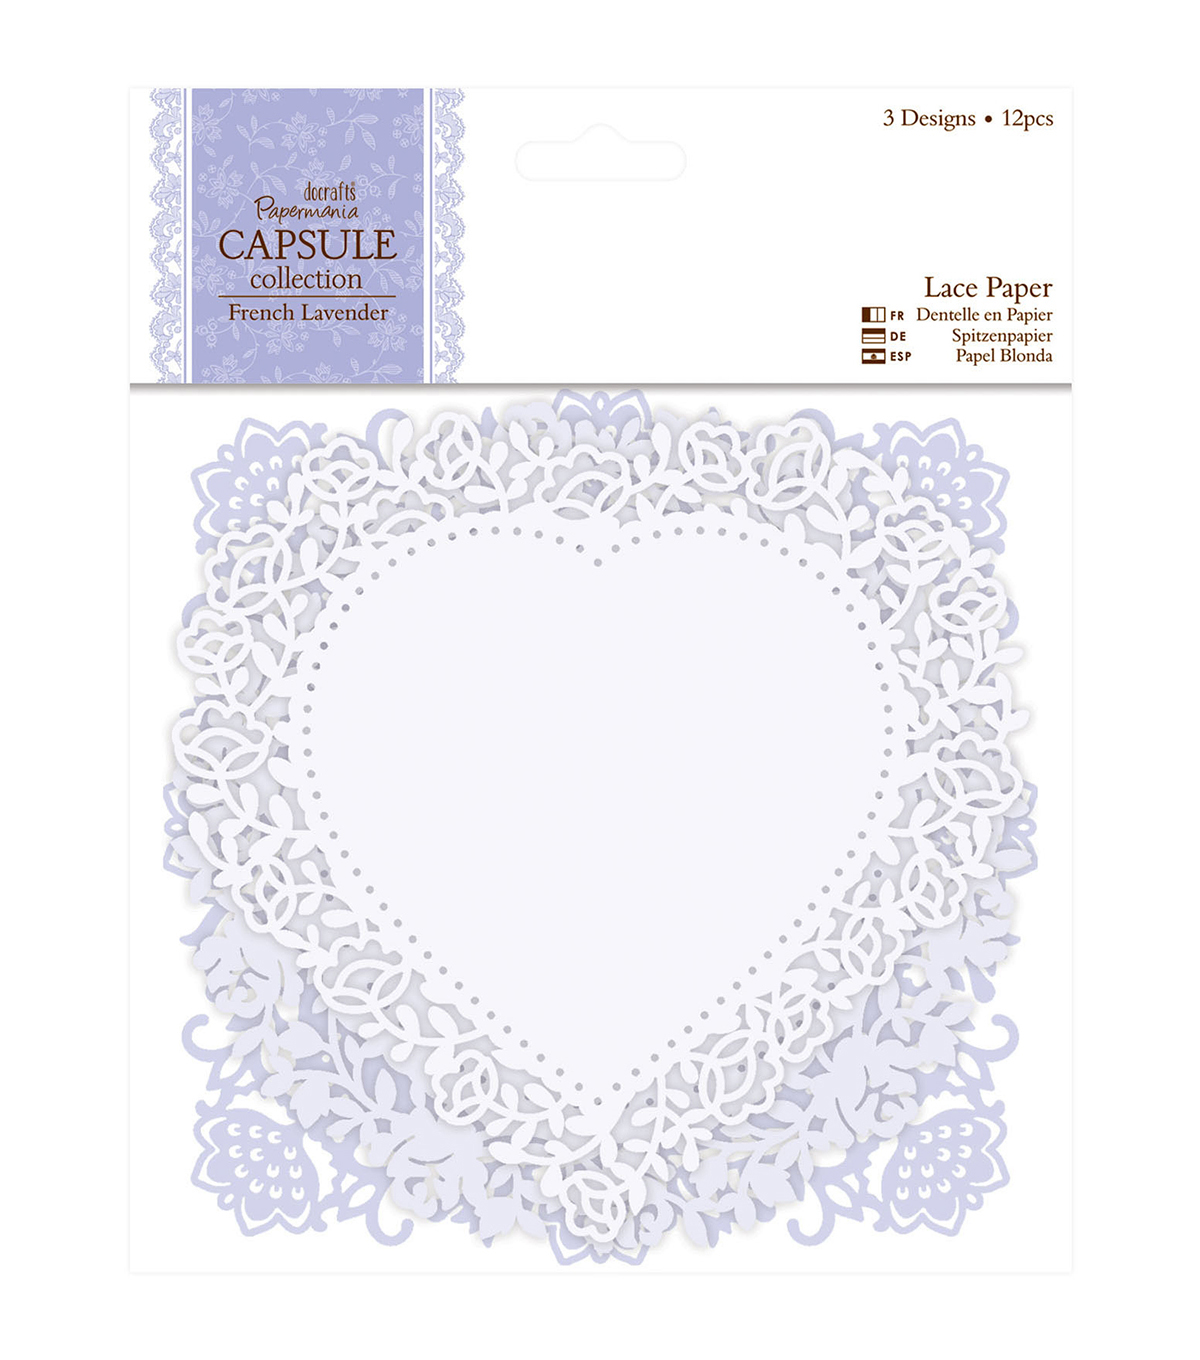 Papermania Capsule French Lavender Die-Cut Lace Paper